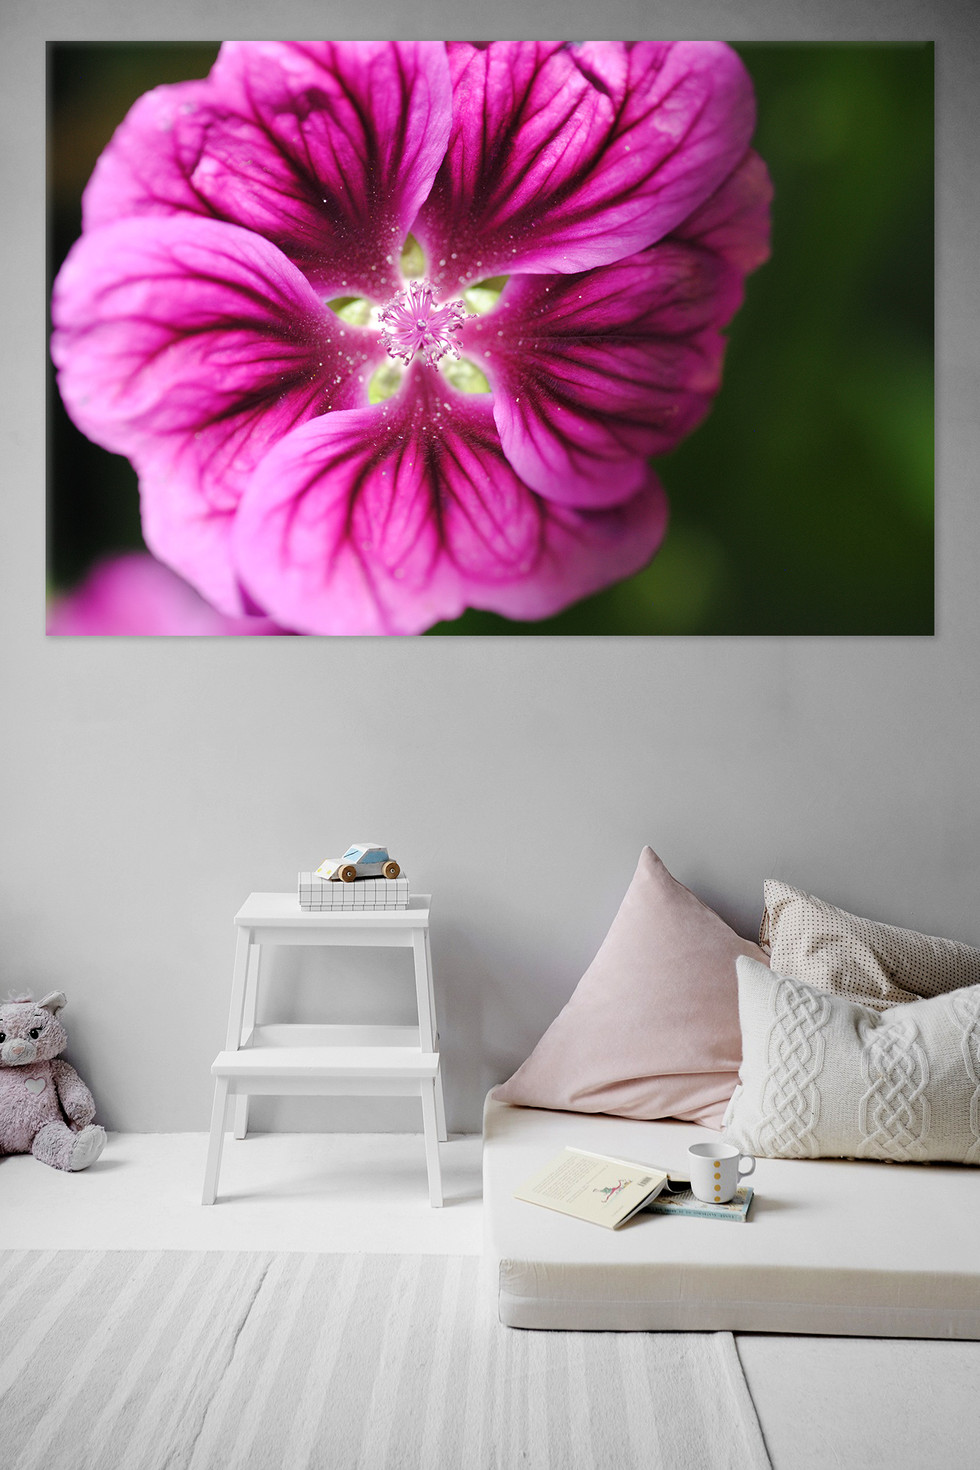 Floral Fission - 40 x 30 - $225 - Out of Stock